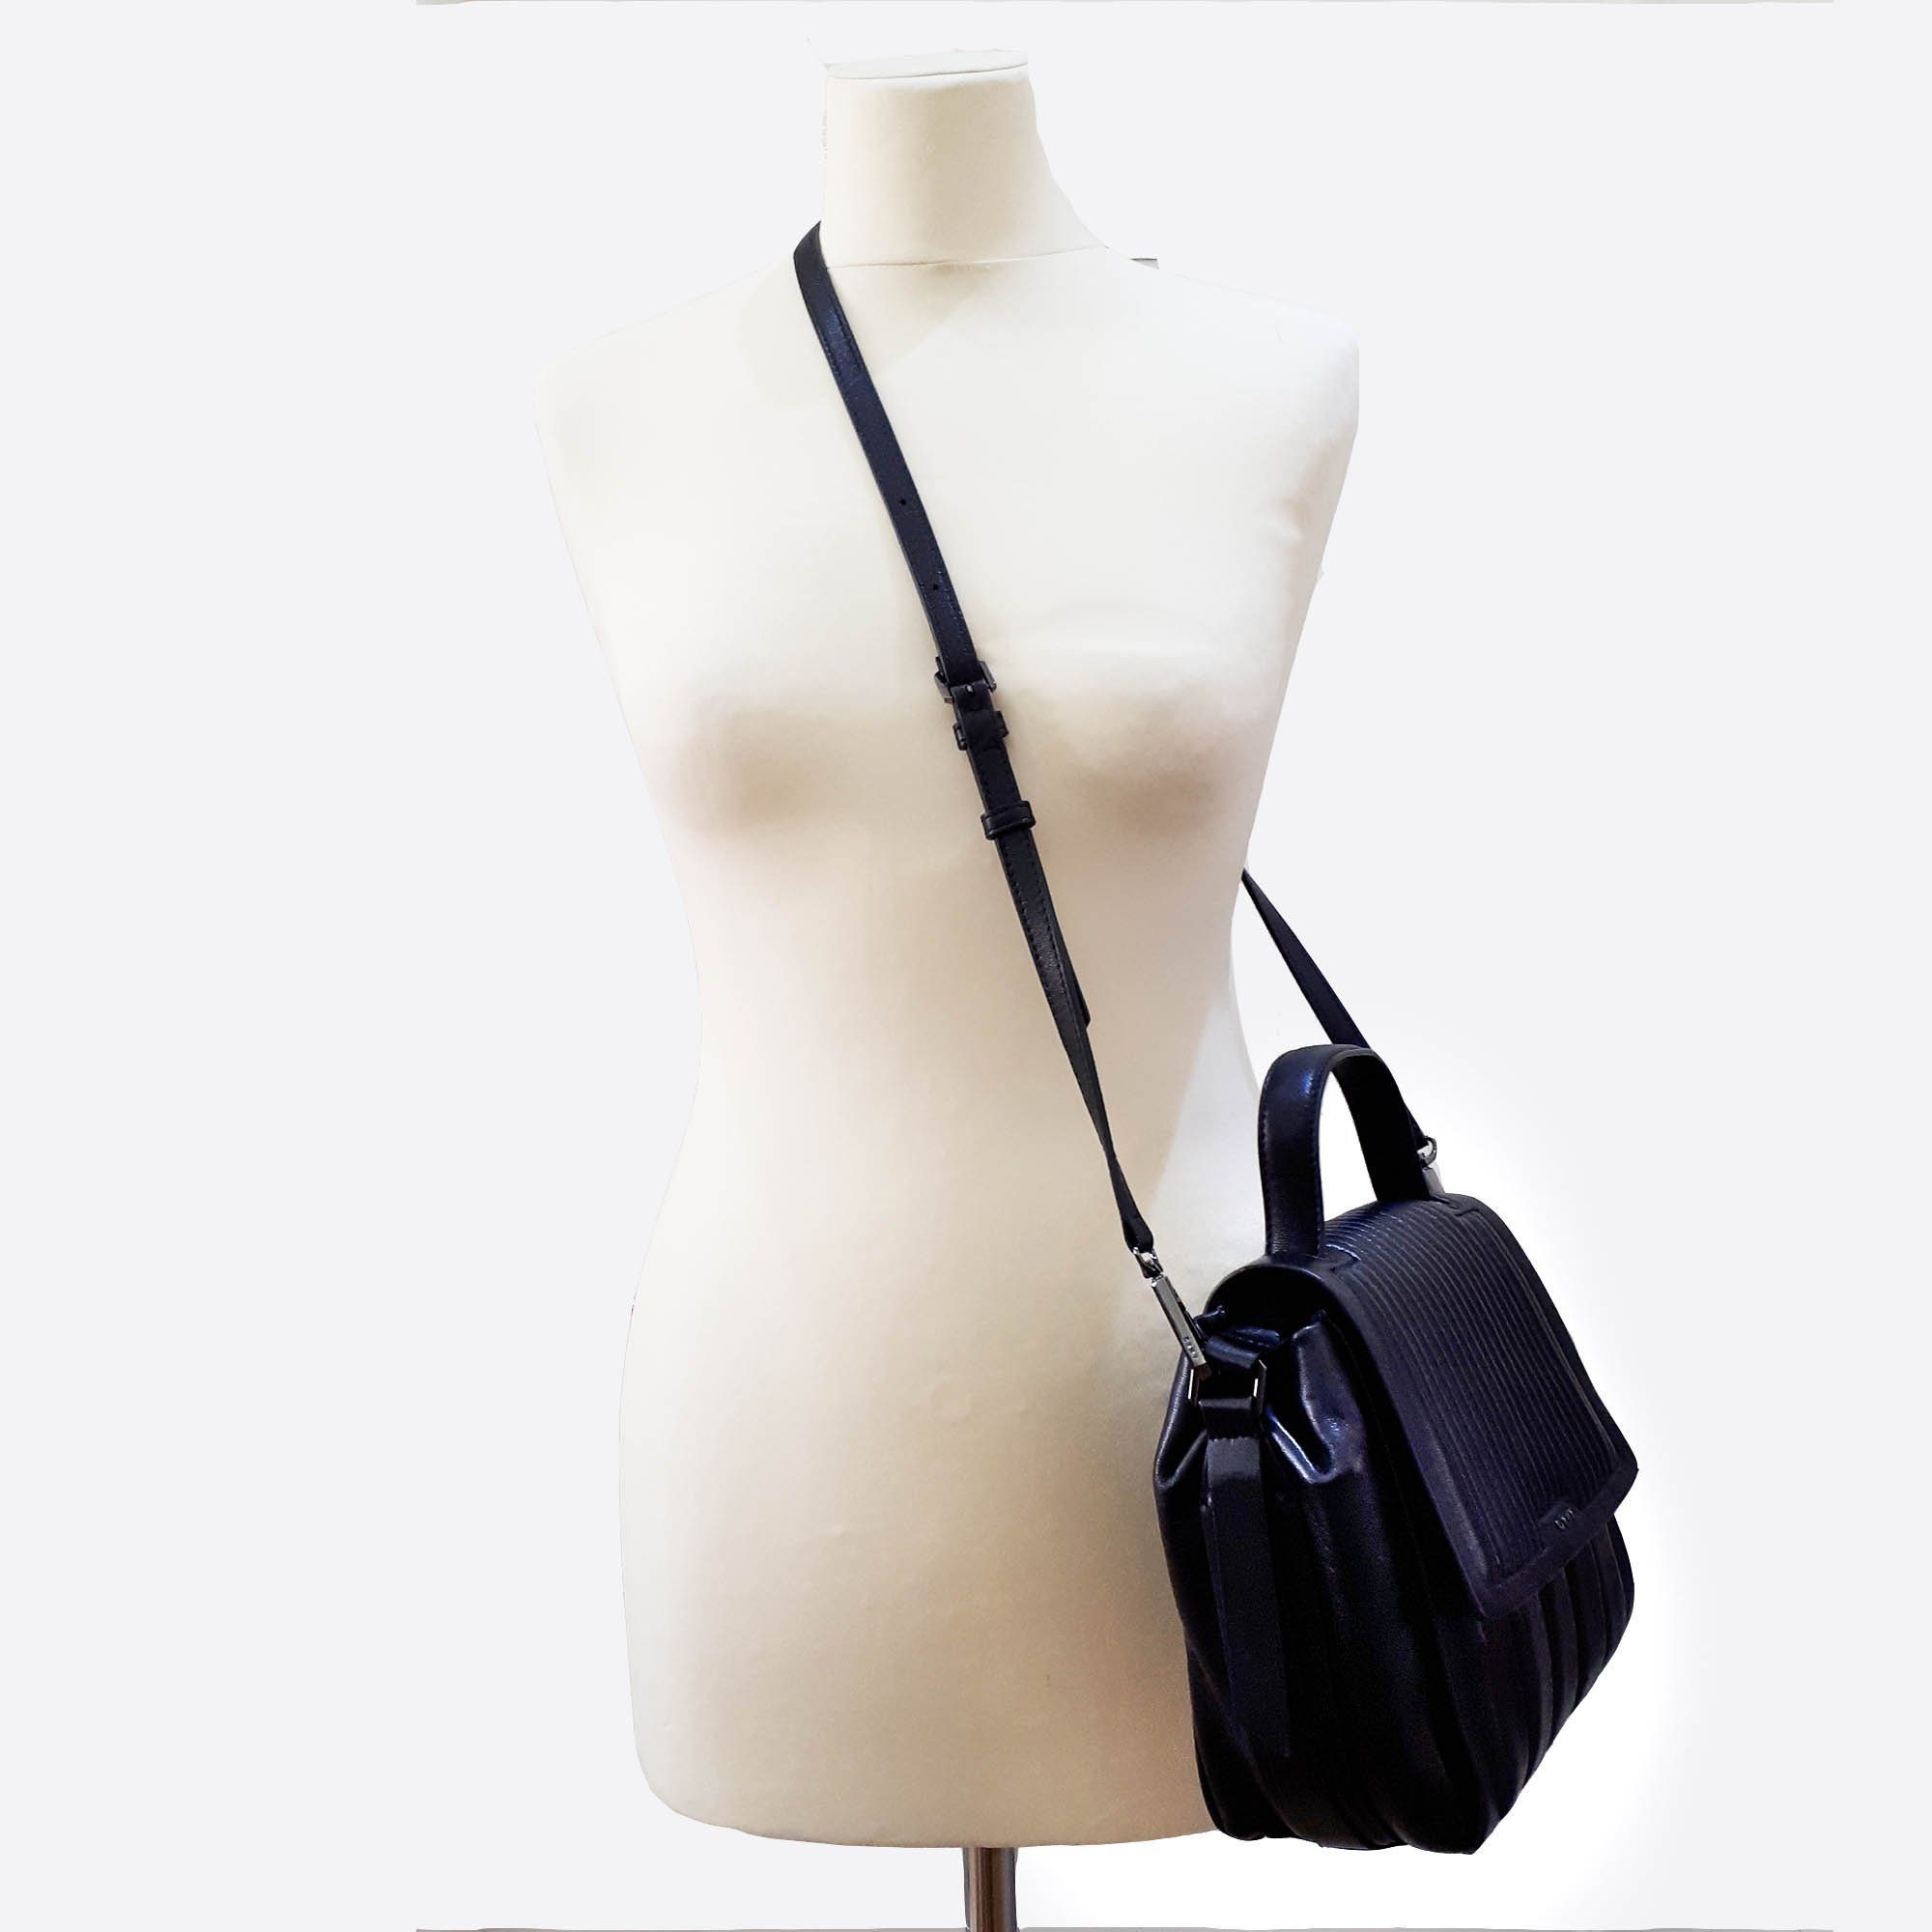 DKNY Black Top Handle Bag